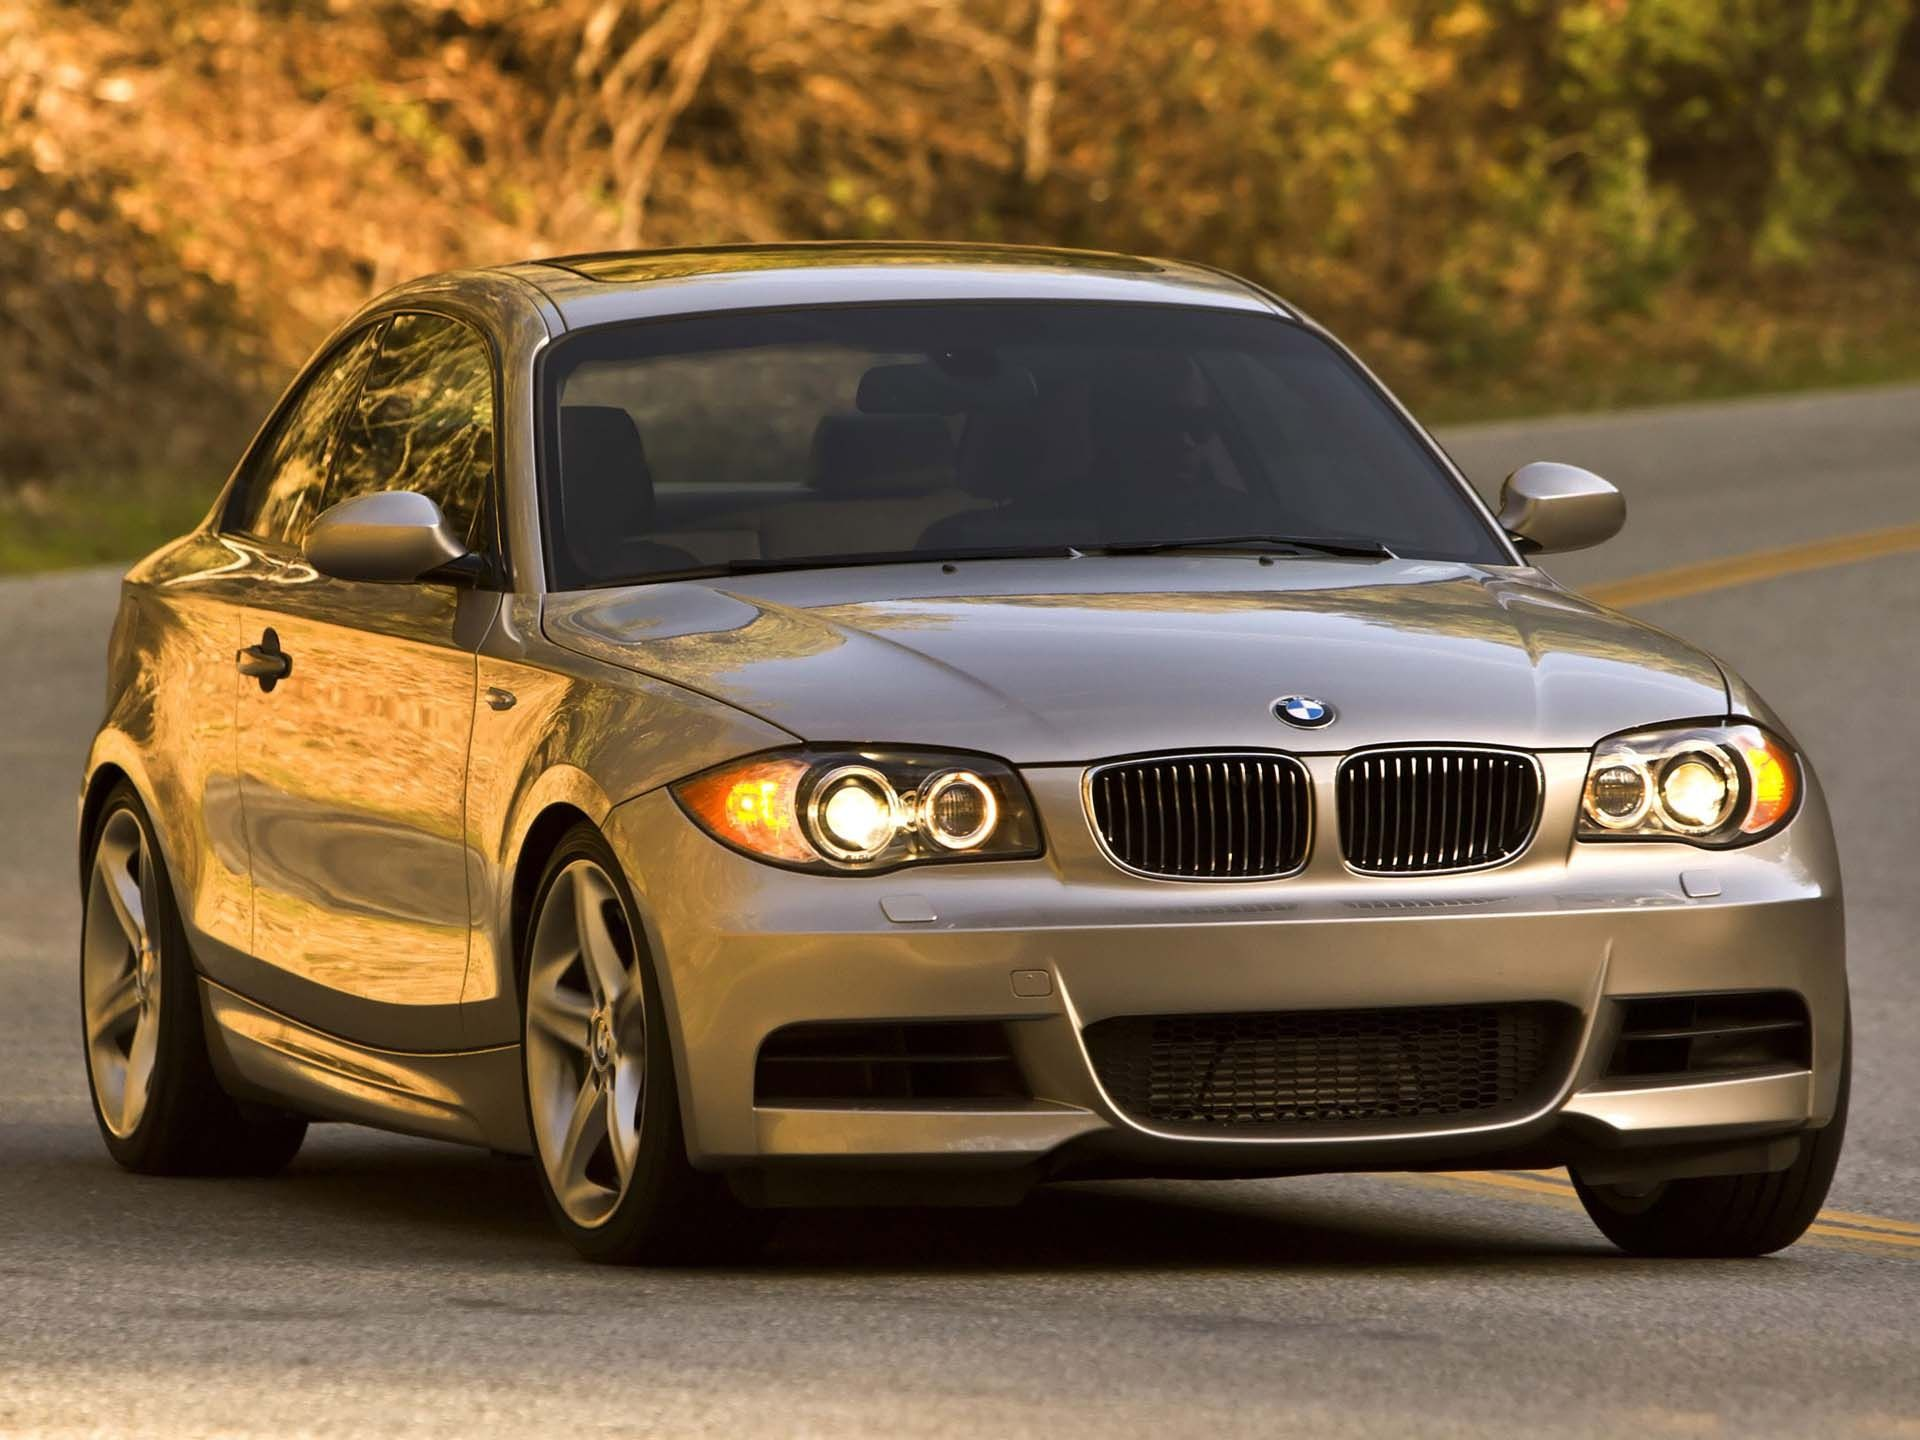 Bmw 1 series 135i coupe check out these bimmers http